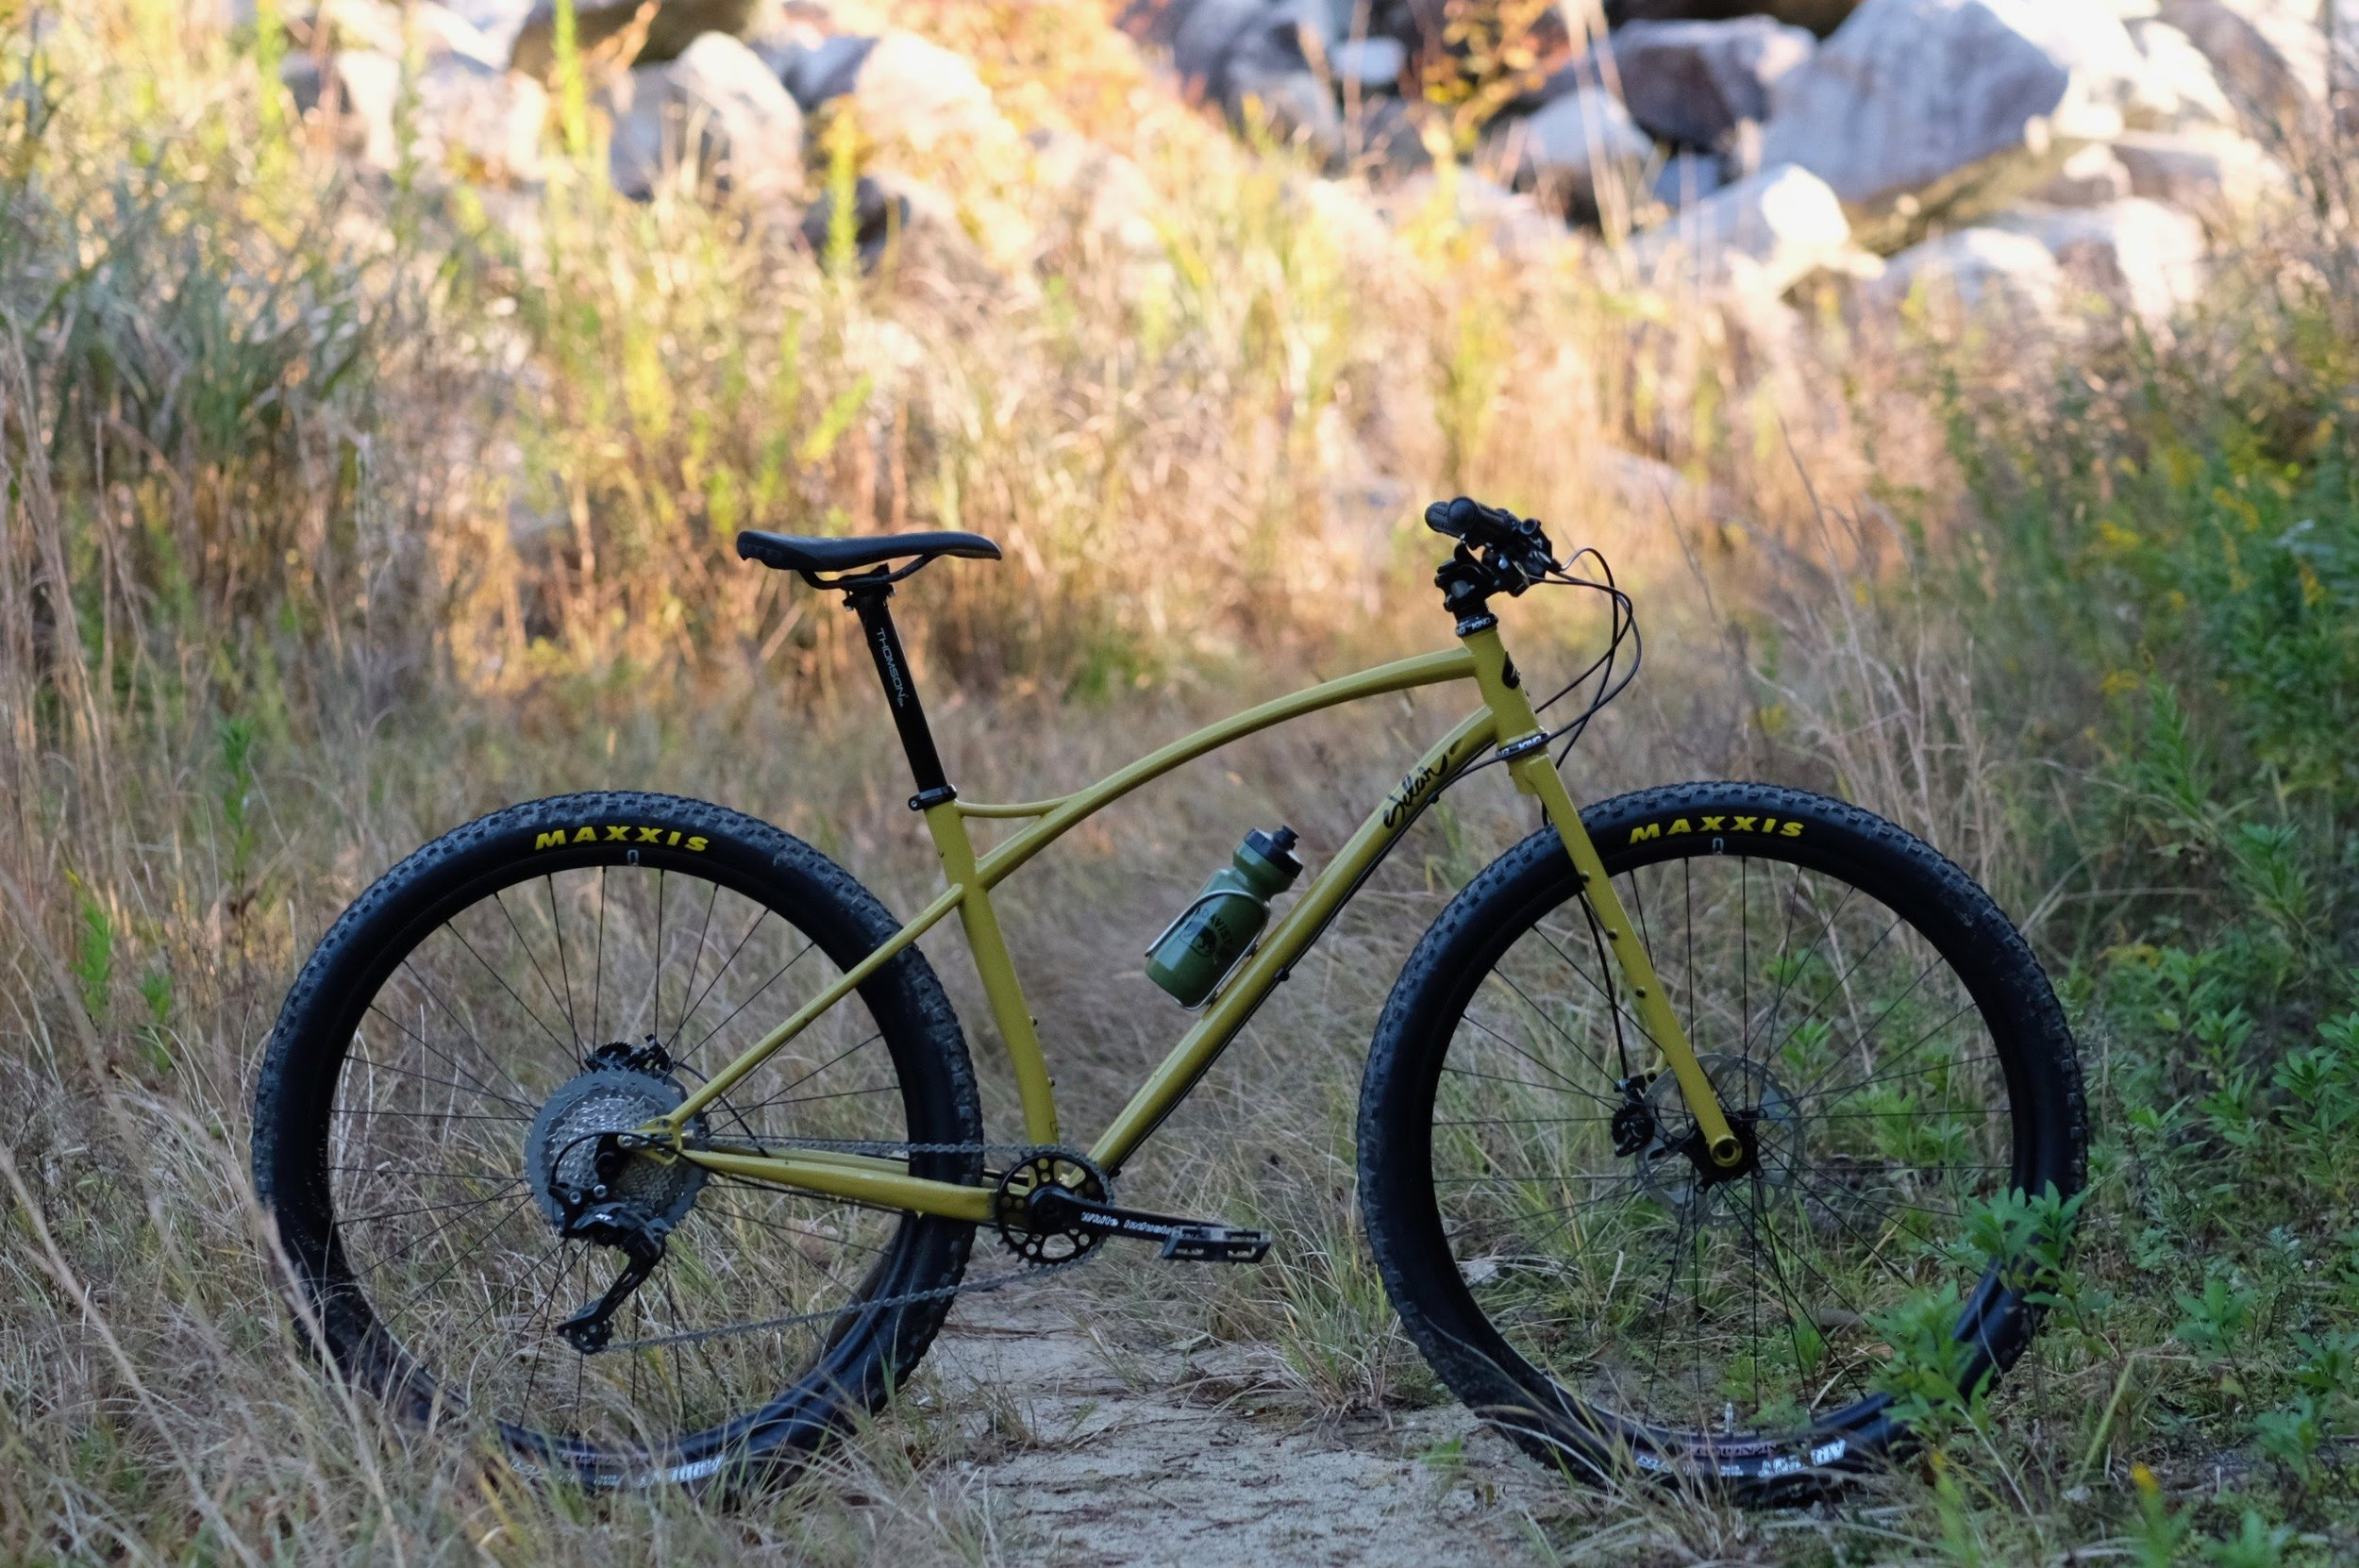 Sklar custom steel mountain bike bikepacking